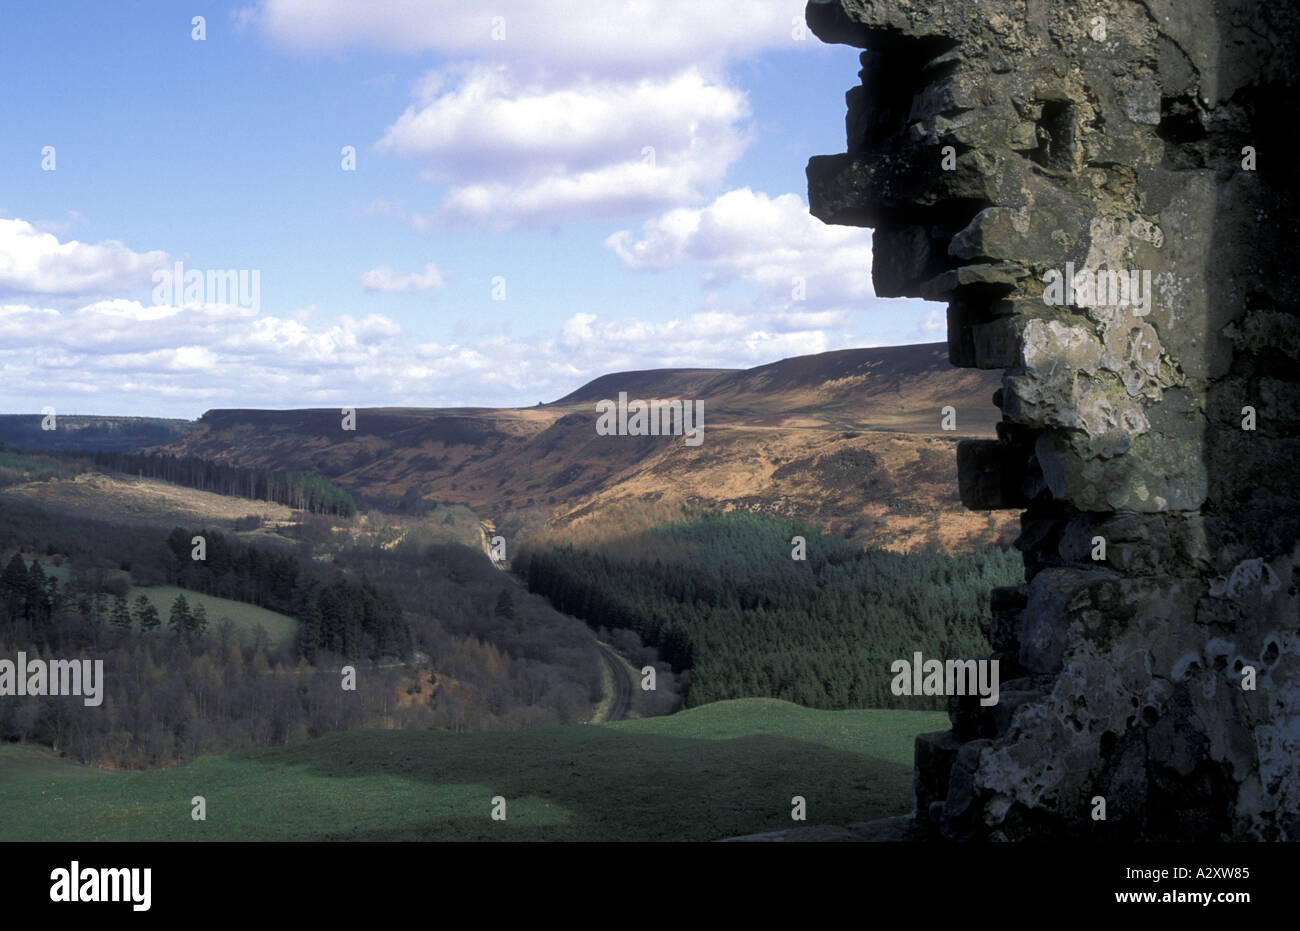 Newton Dale from the ruins of Skelton Tower - Stock Image